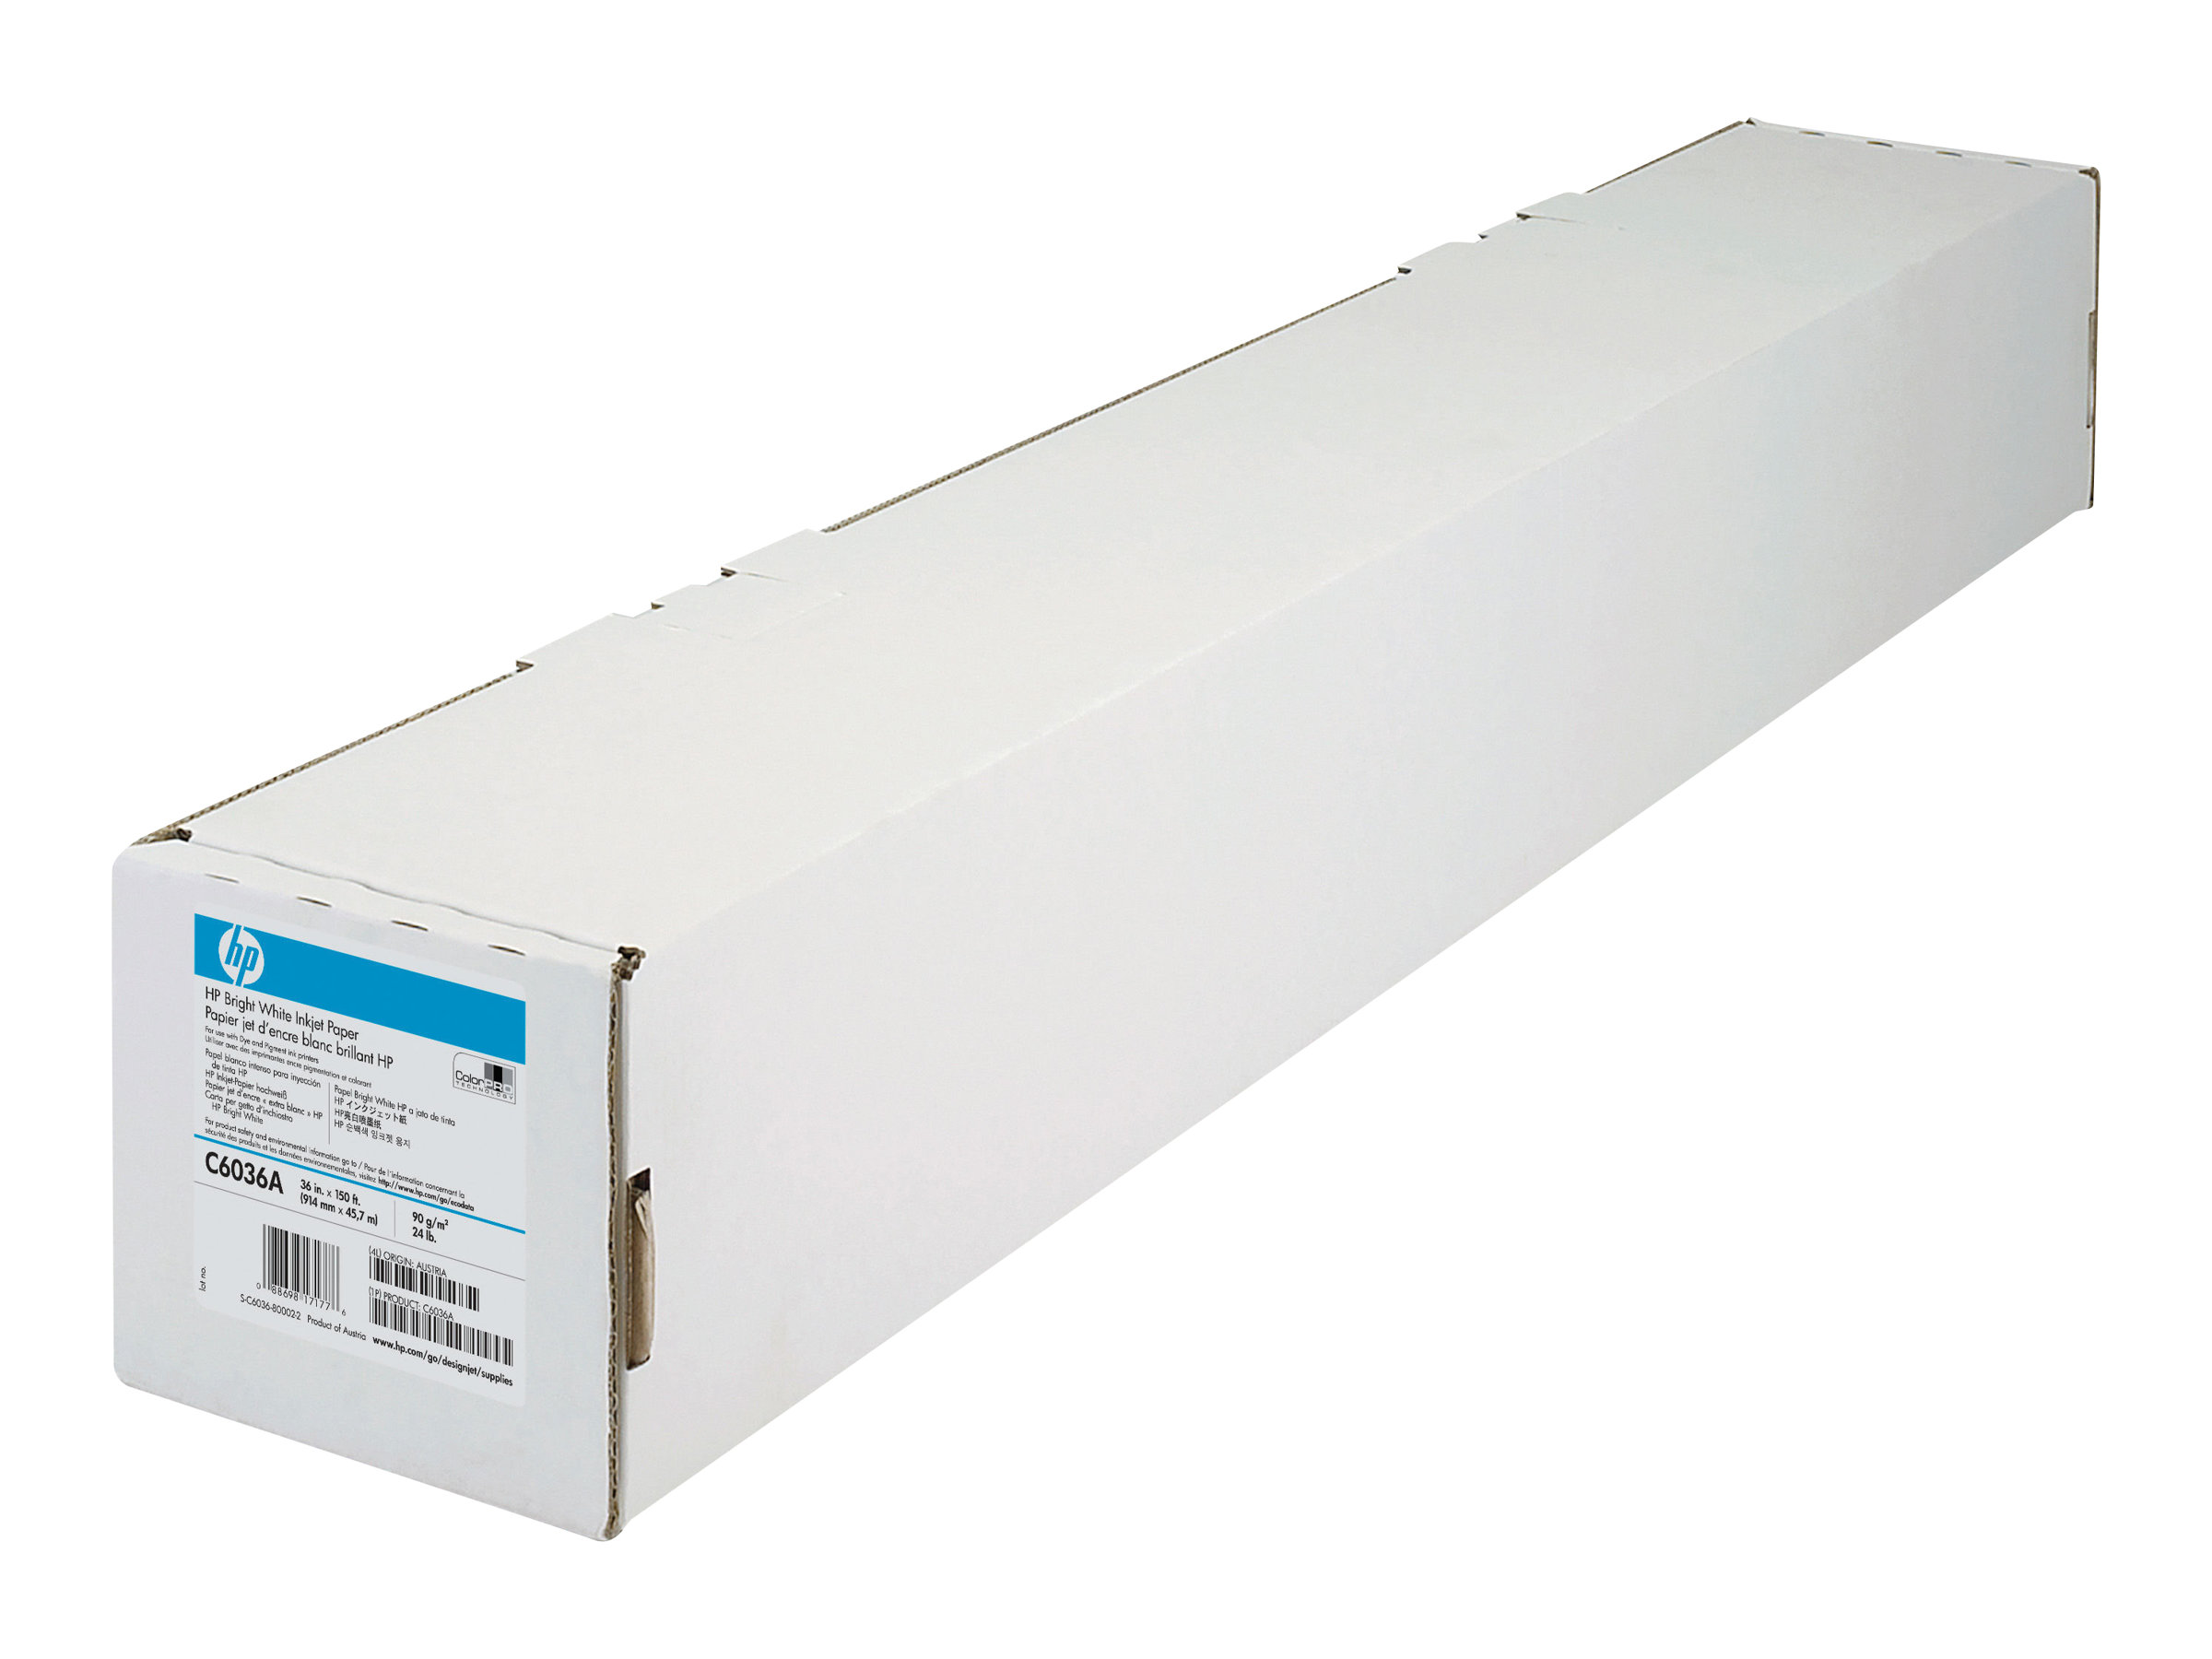 HP Bright White Inkjet Paper - Matt